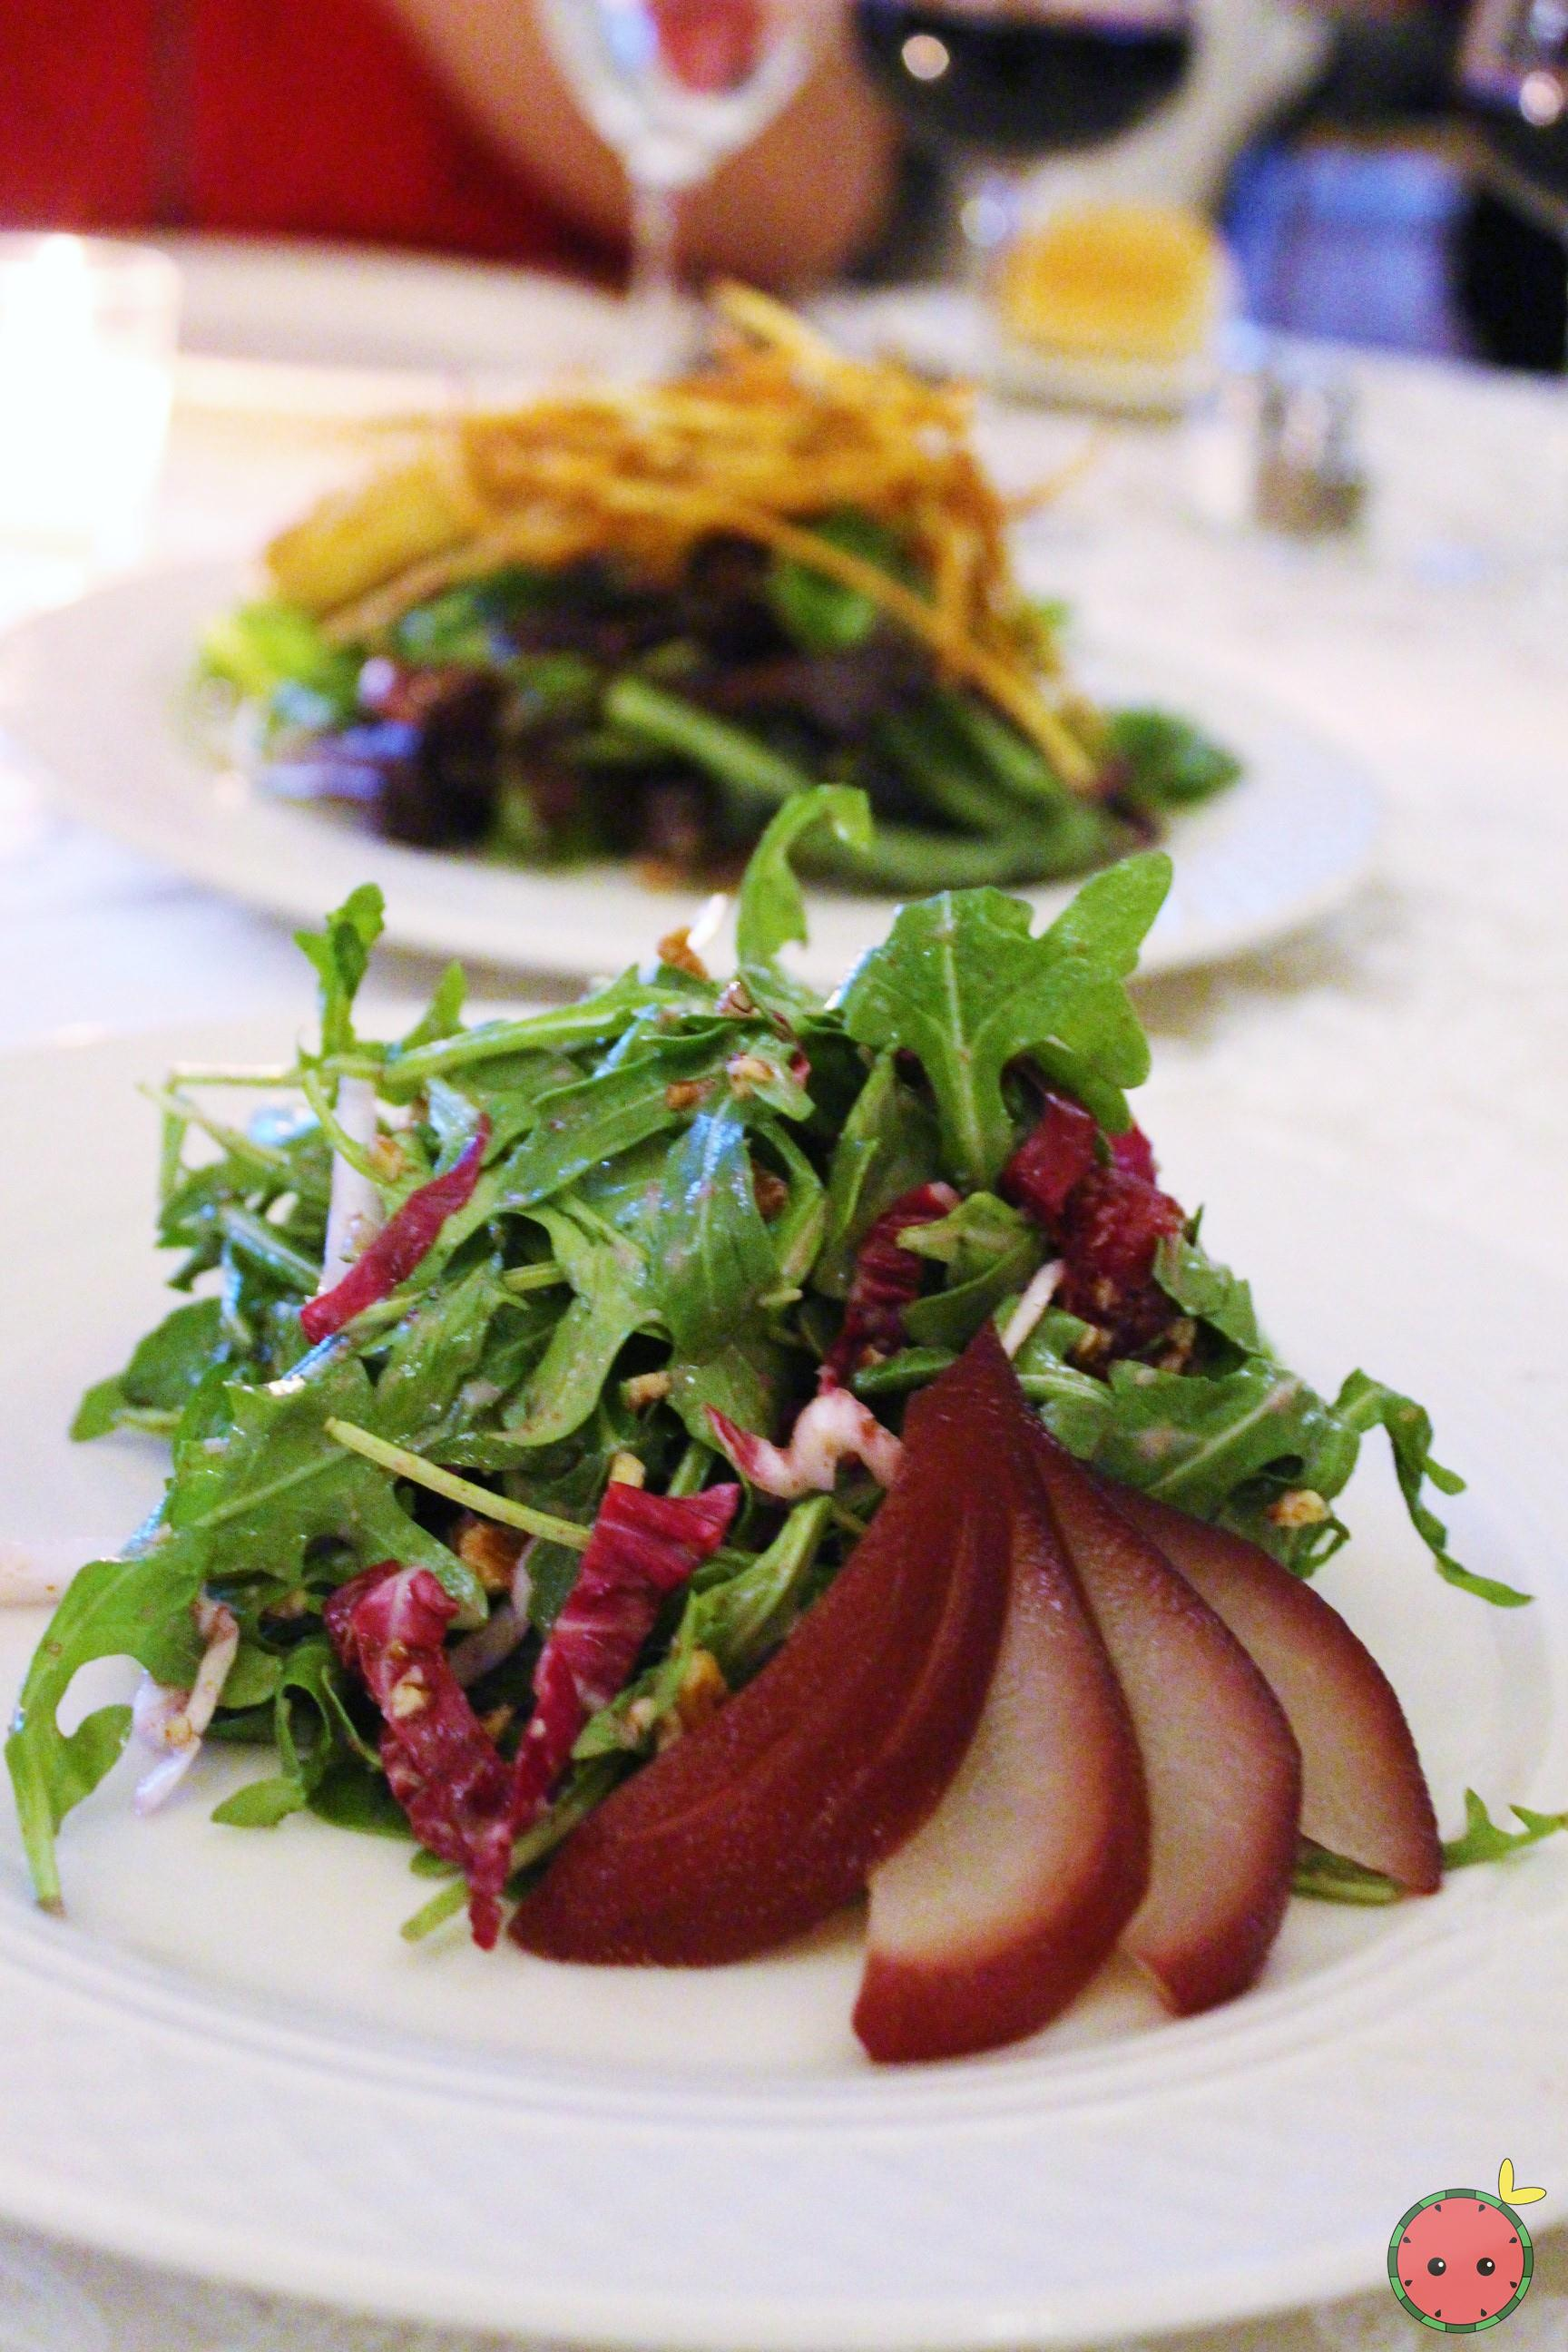 Tri-color lettuce with port wine poached pears, toasted pecans, and pear glaze